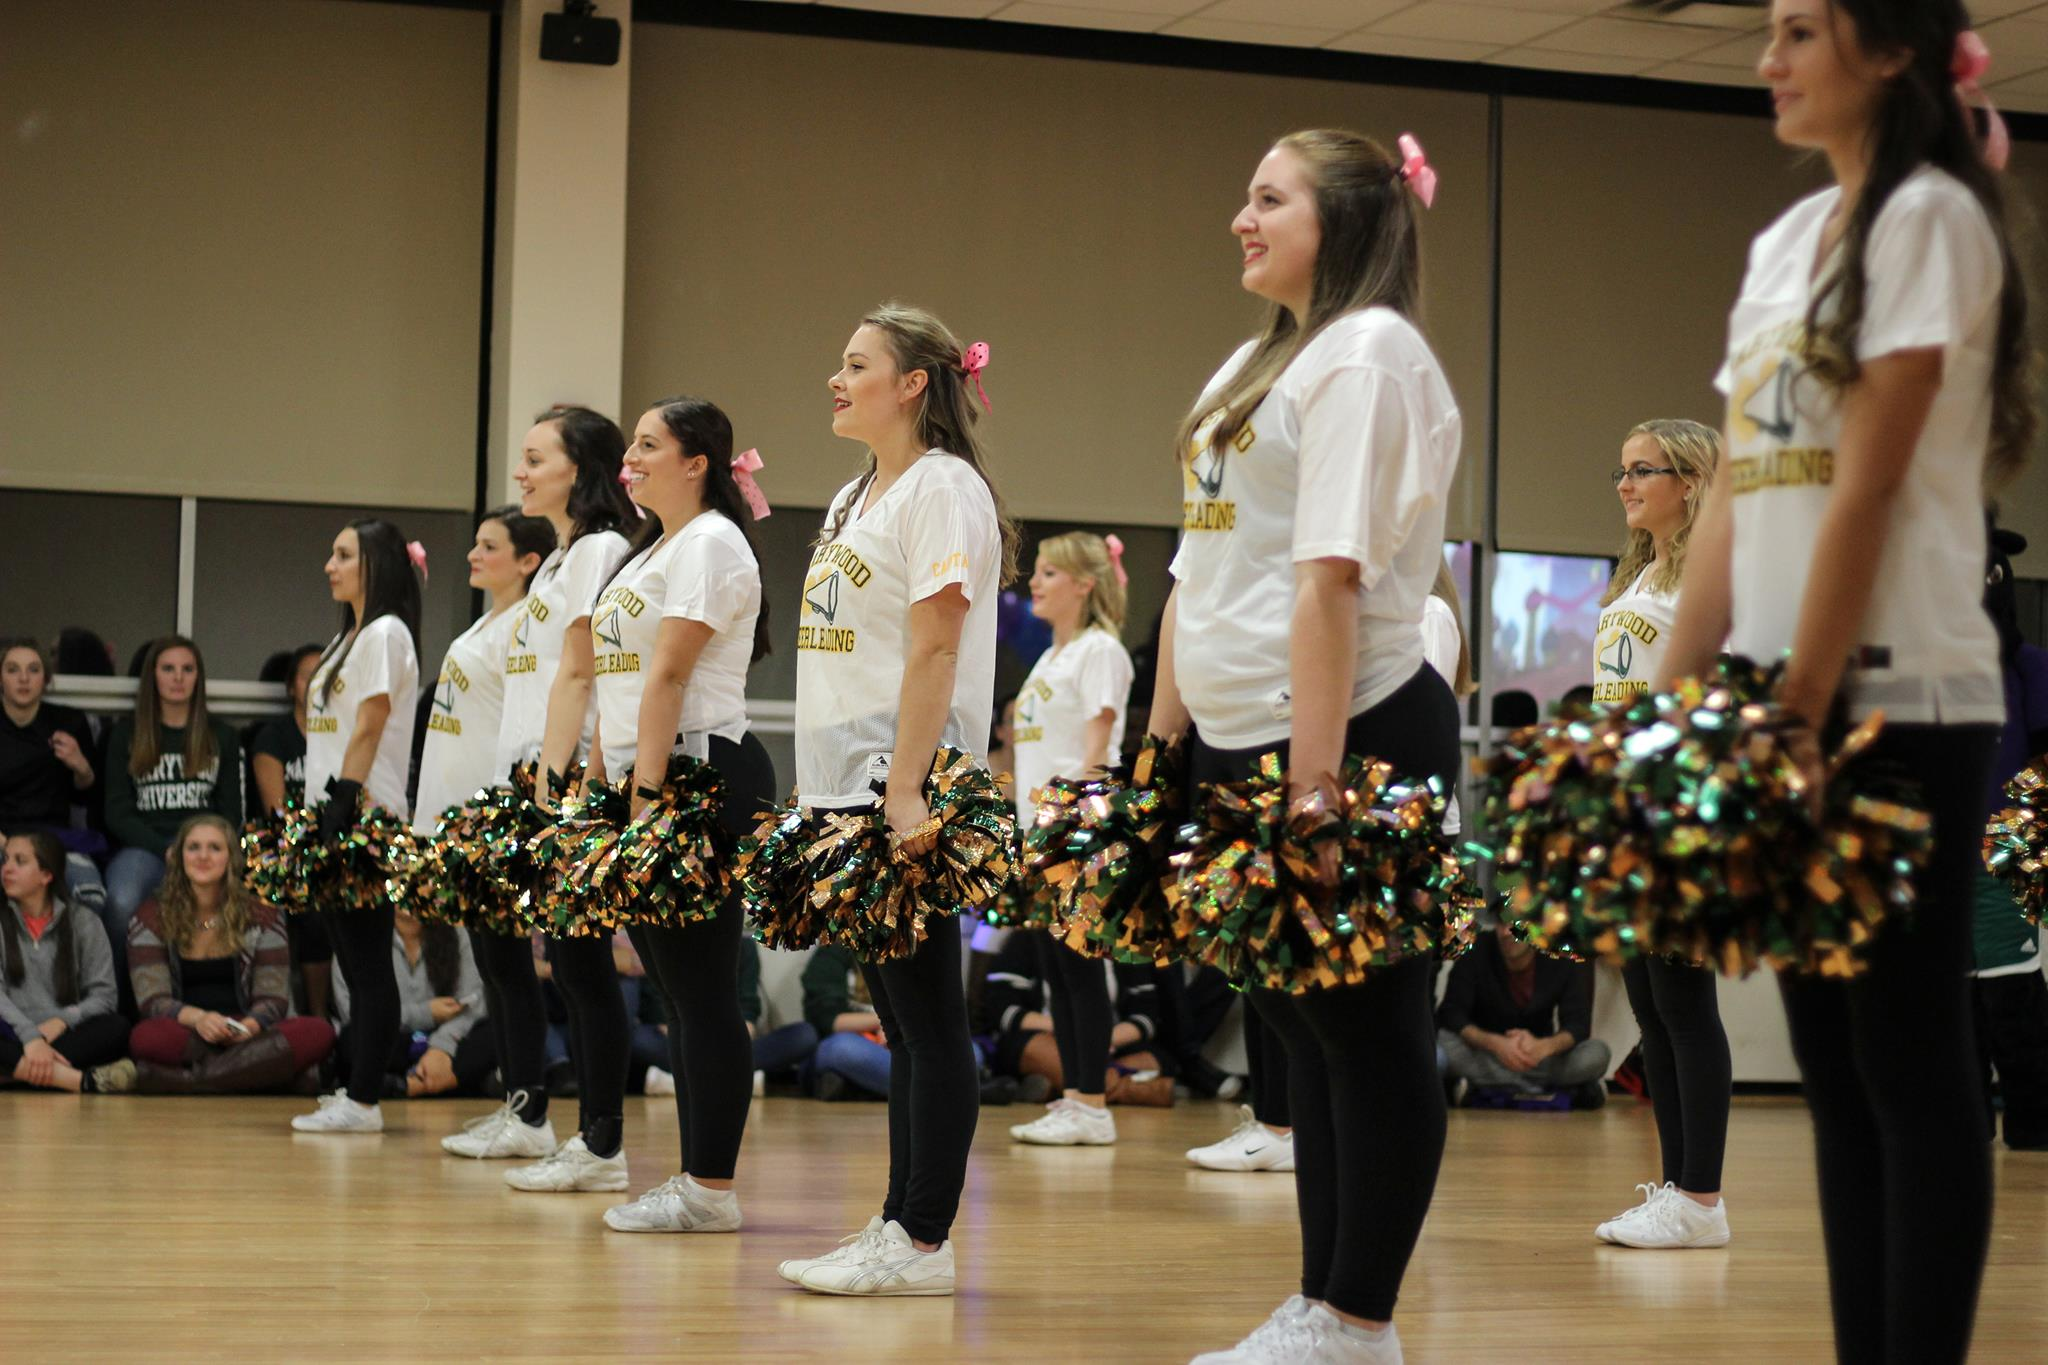 Members of the Marywood Cheerleading team perform for the crowd at Marywood Madness.